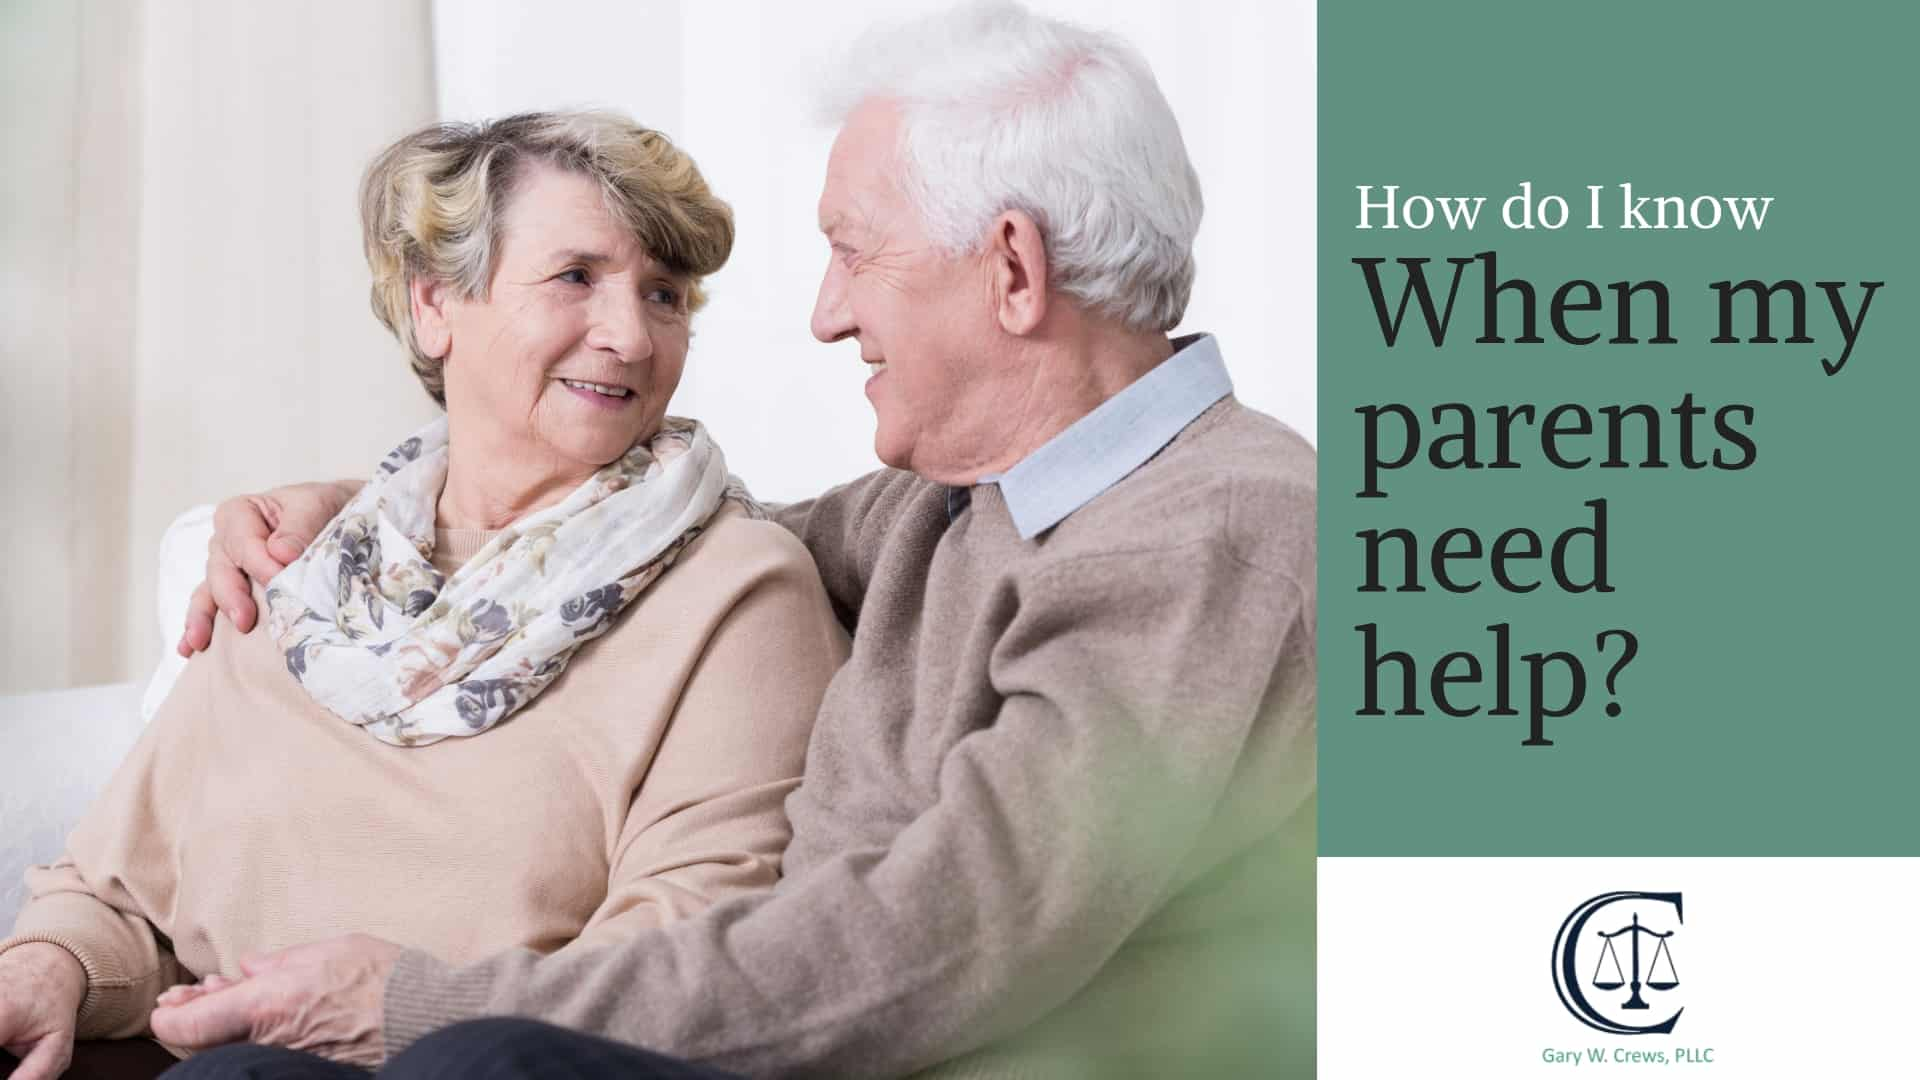 how do i know when my parents need help? - Assessment - How Do I Know When My Parents Need Help?